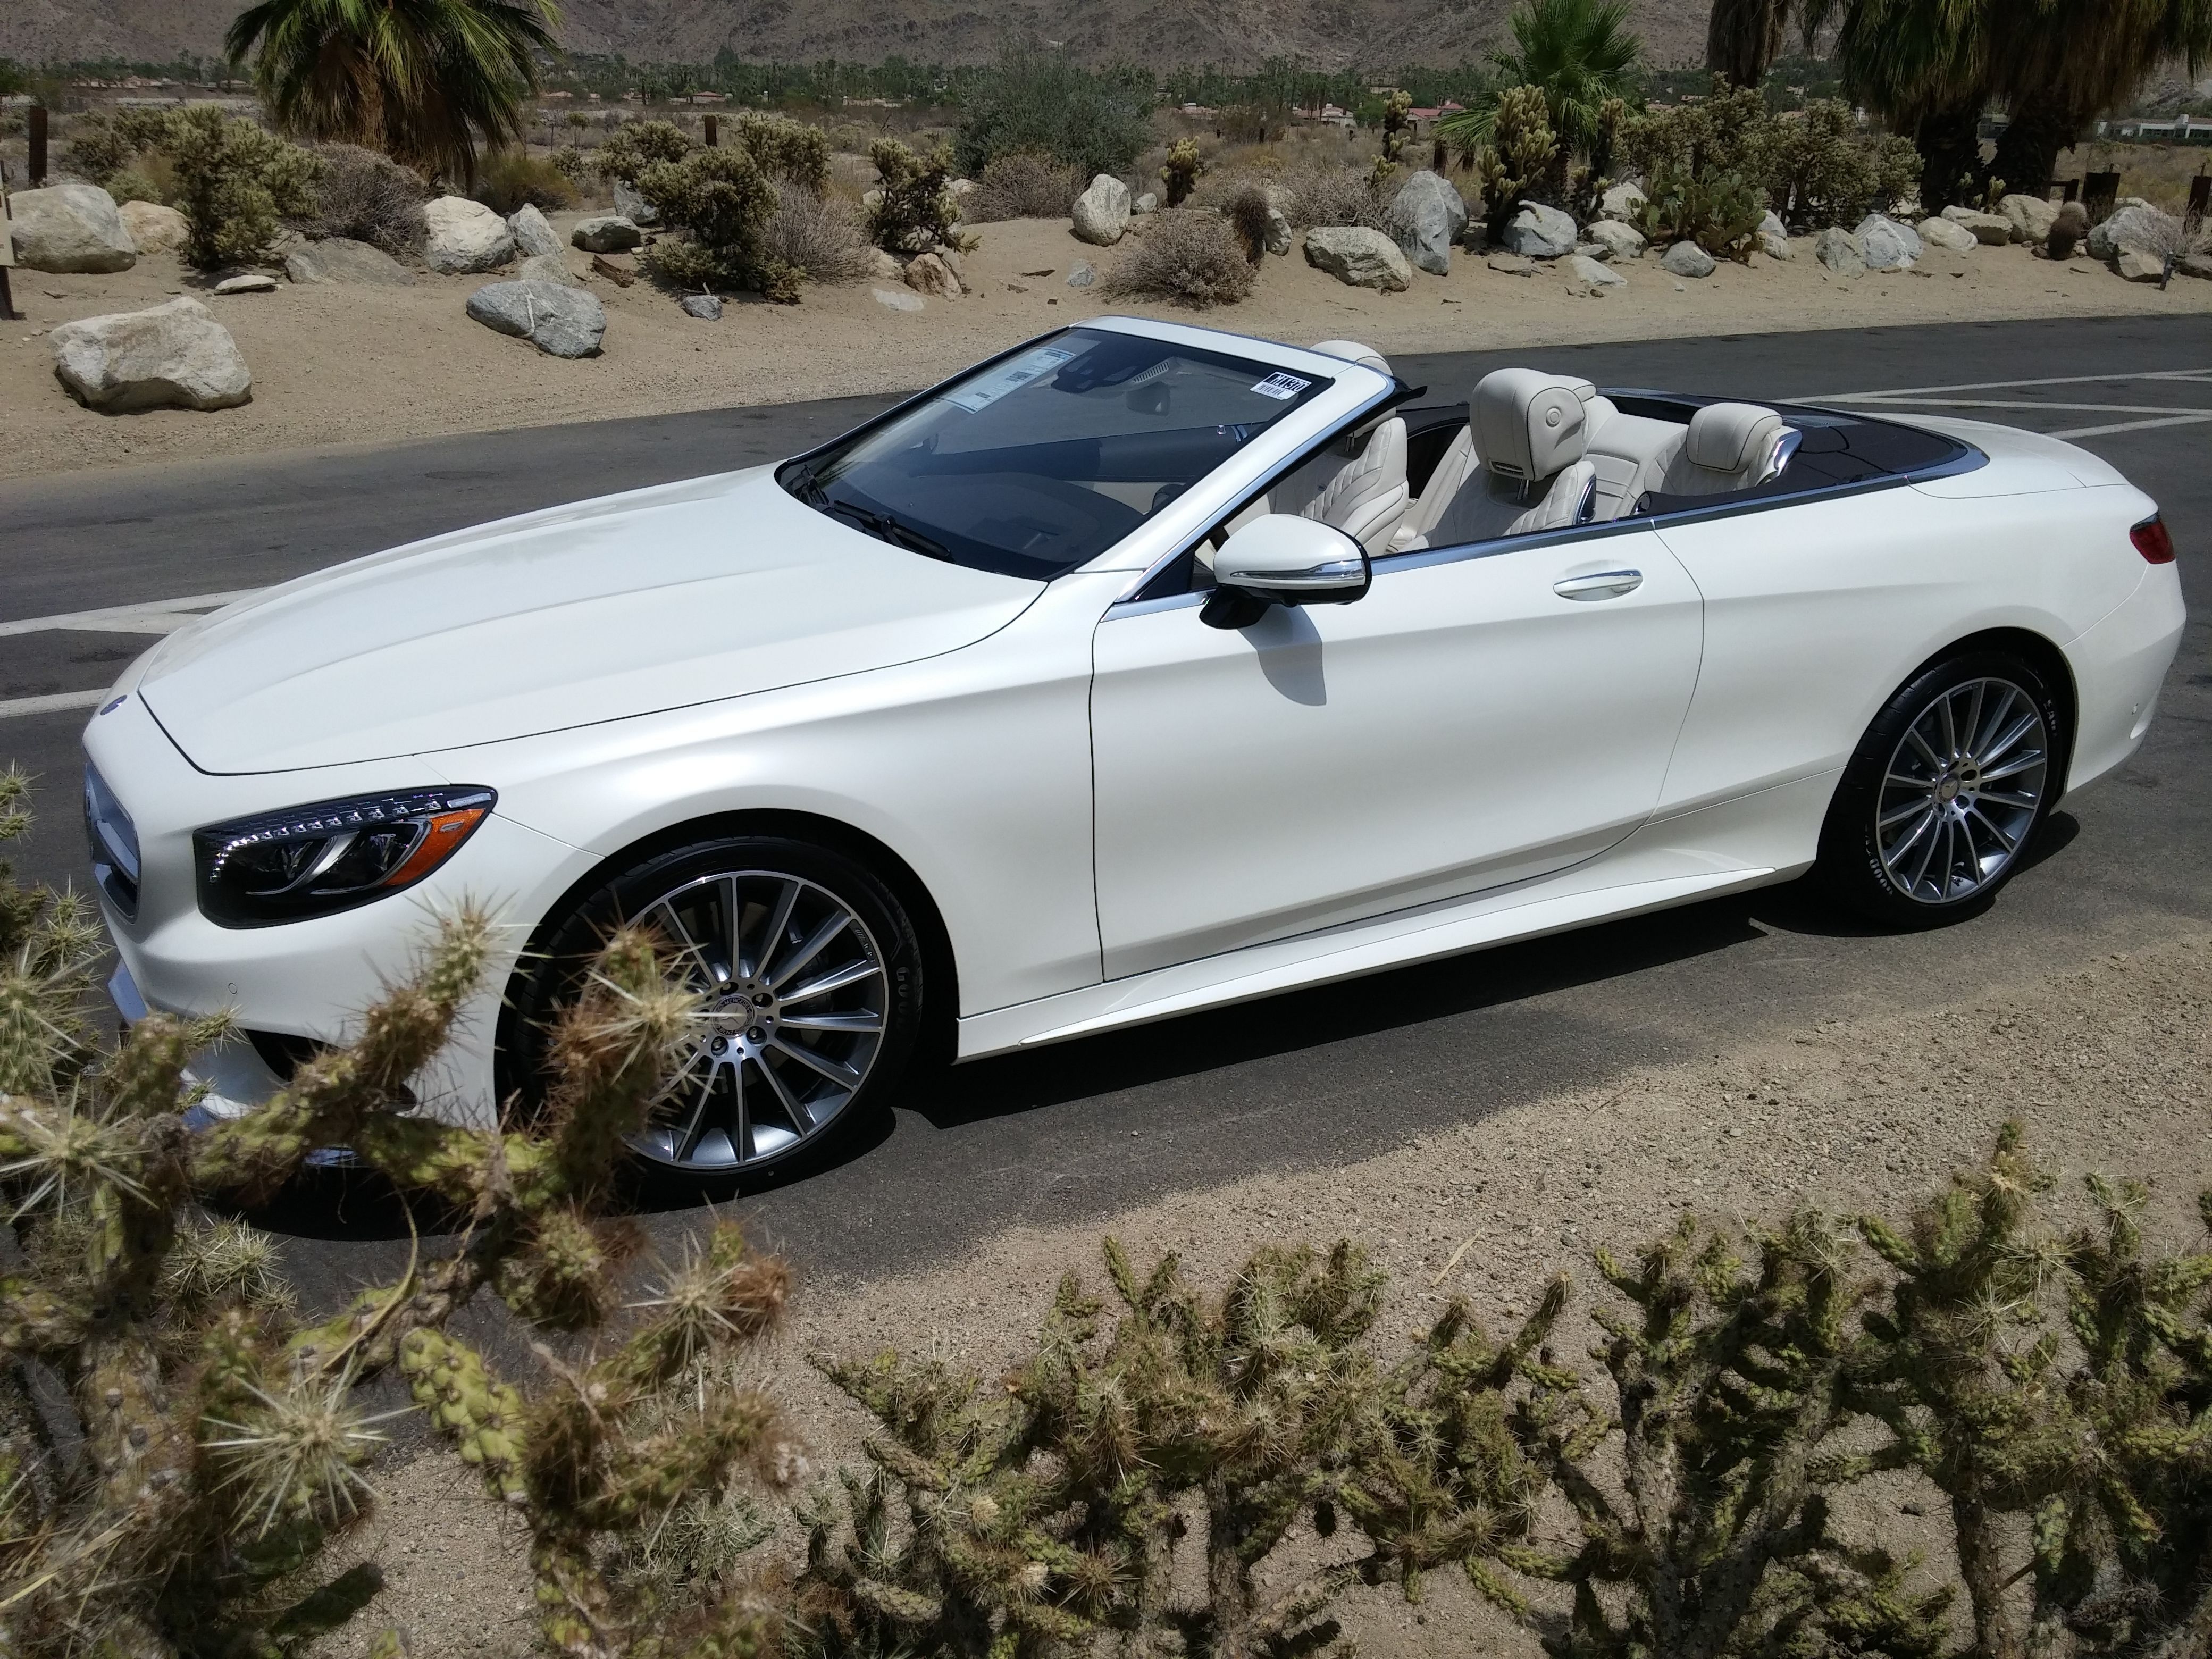 white benz wiki convertible convertibles wikimedia commons jpg file mercedes